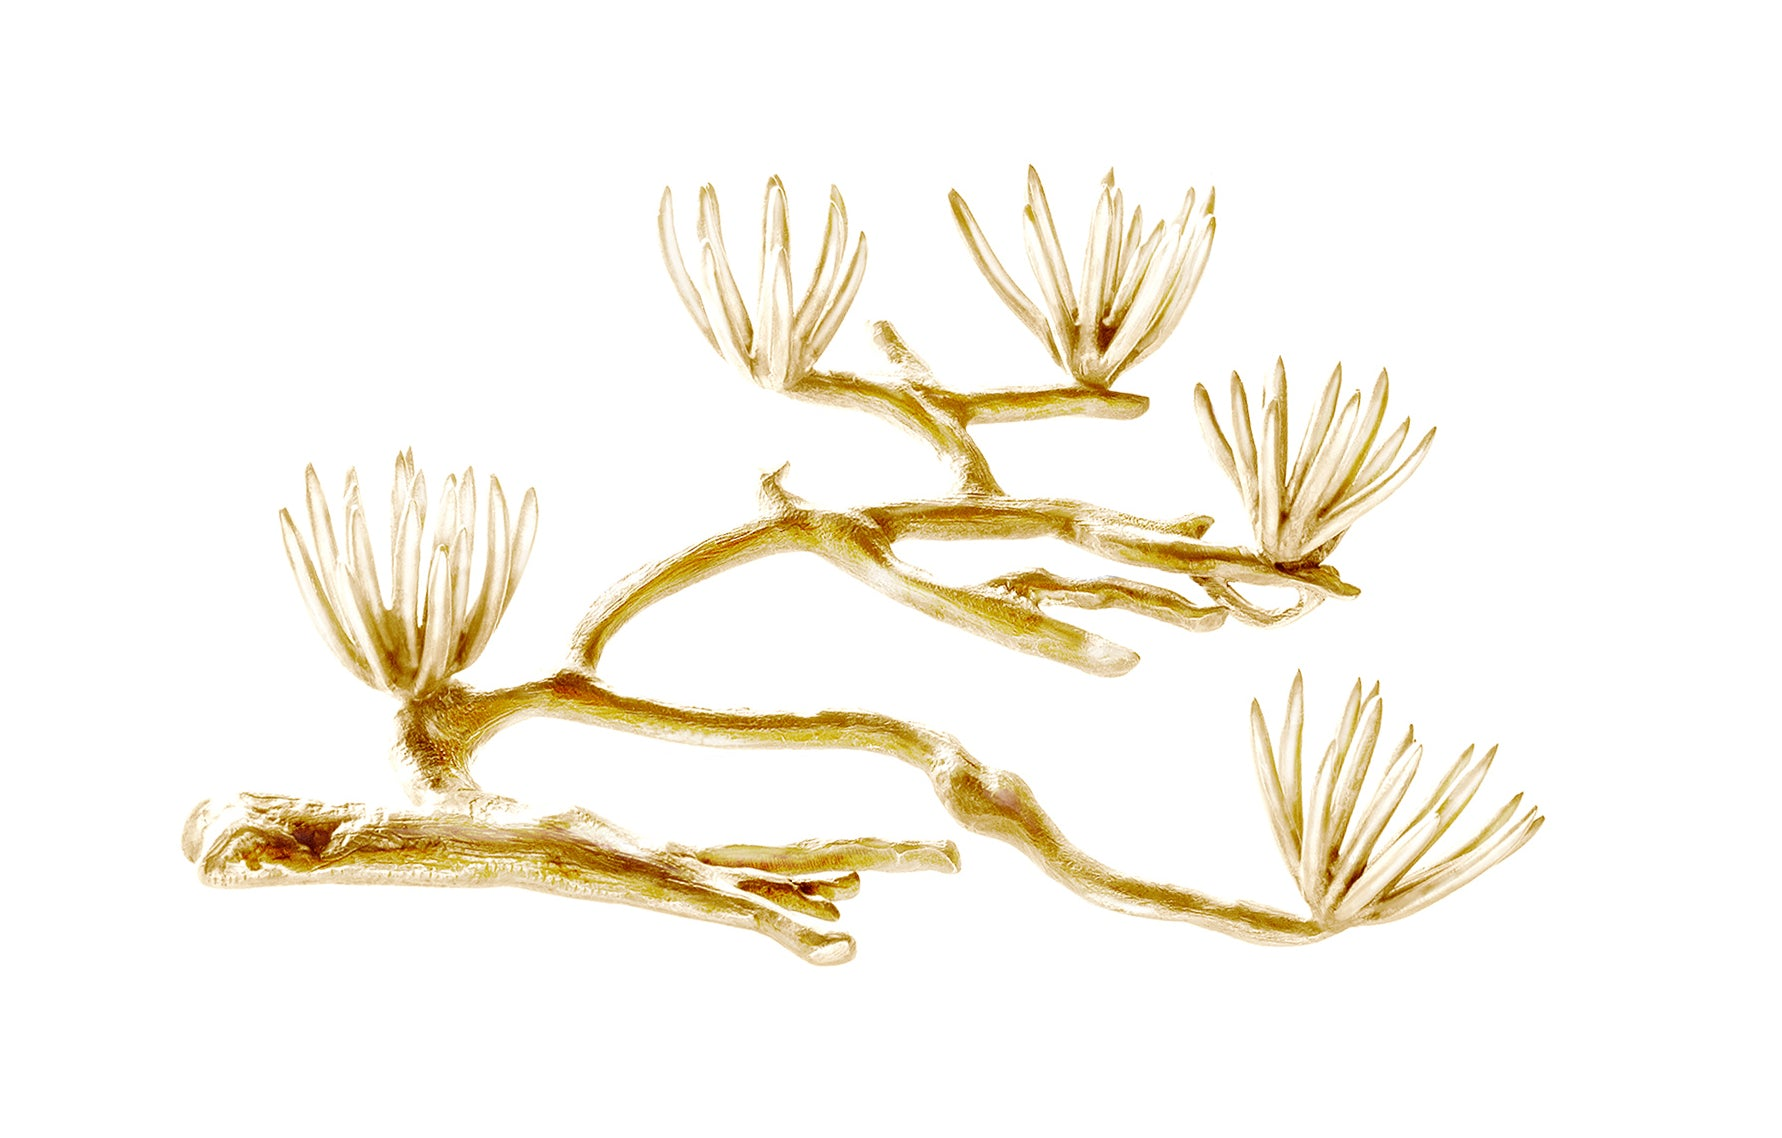 18 Karat Yellow Gold Pine Brooch by the Artist, Featured in Vogue8700